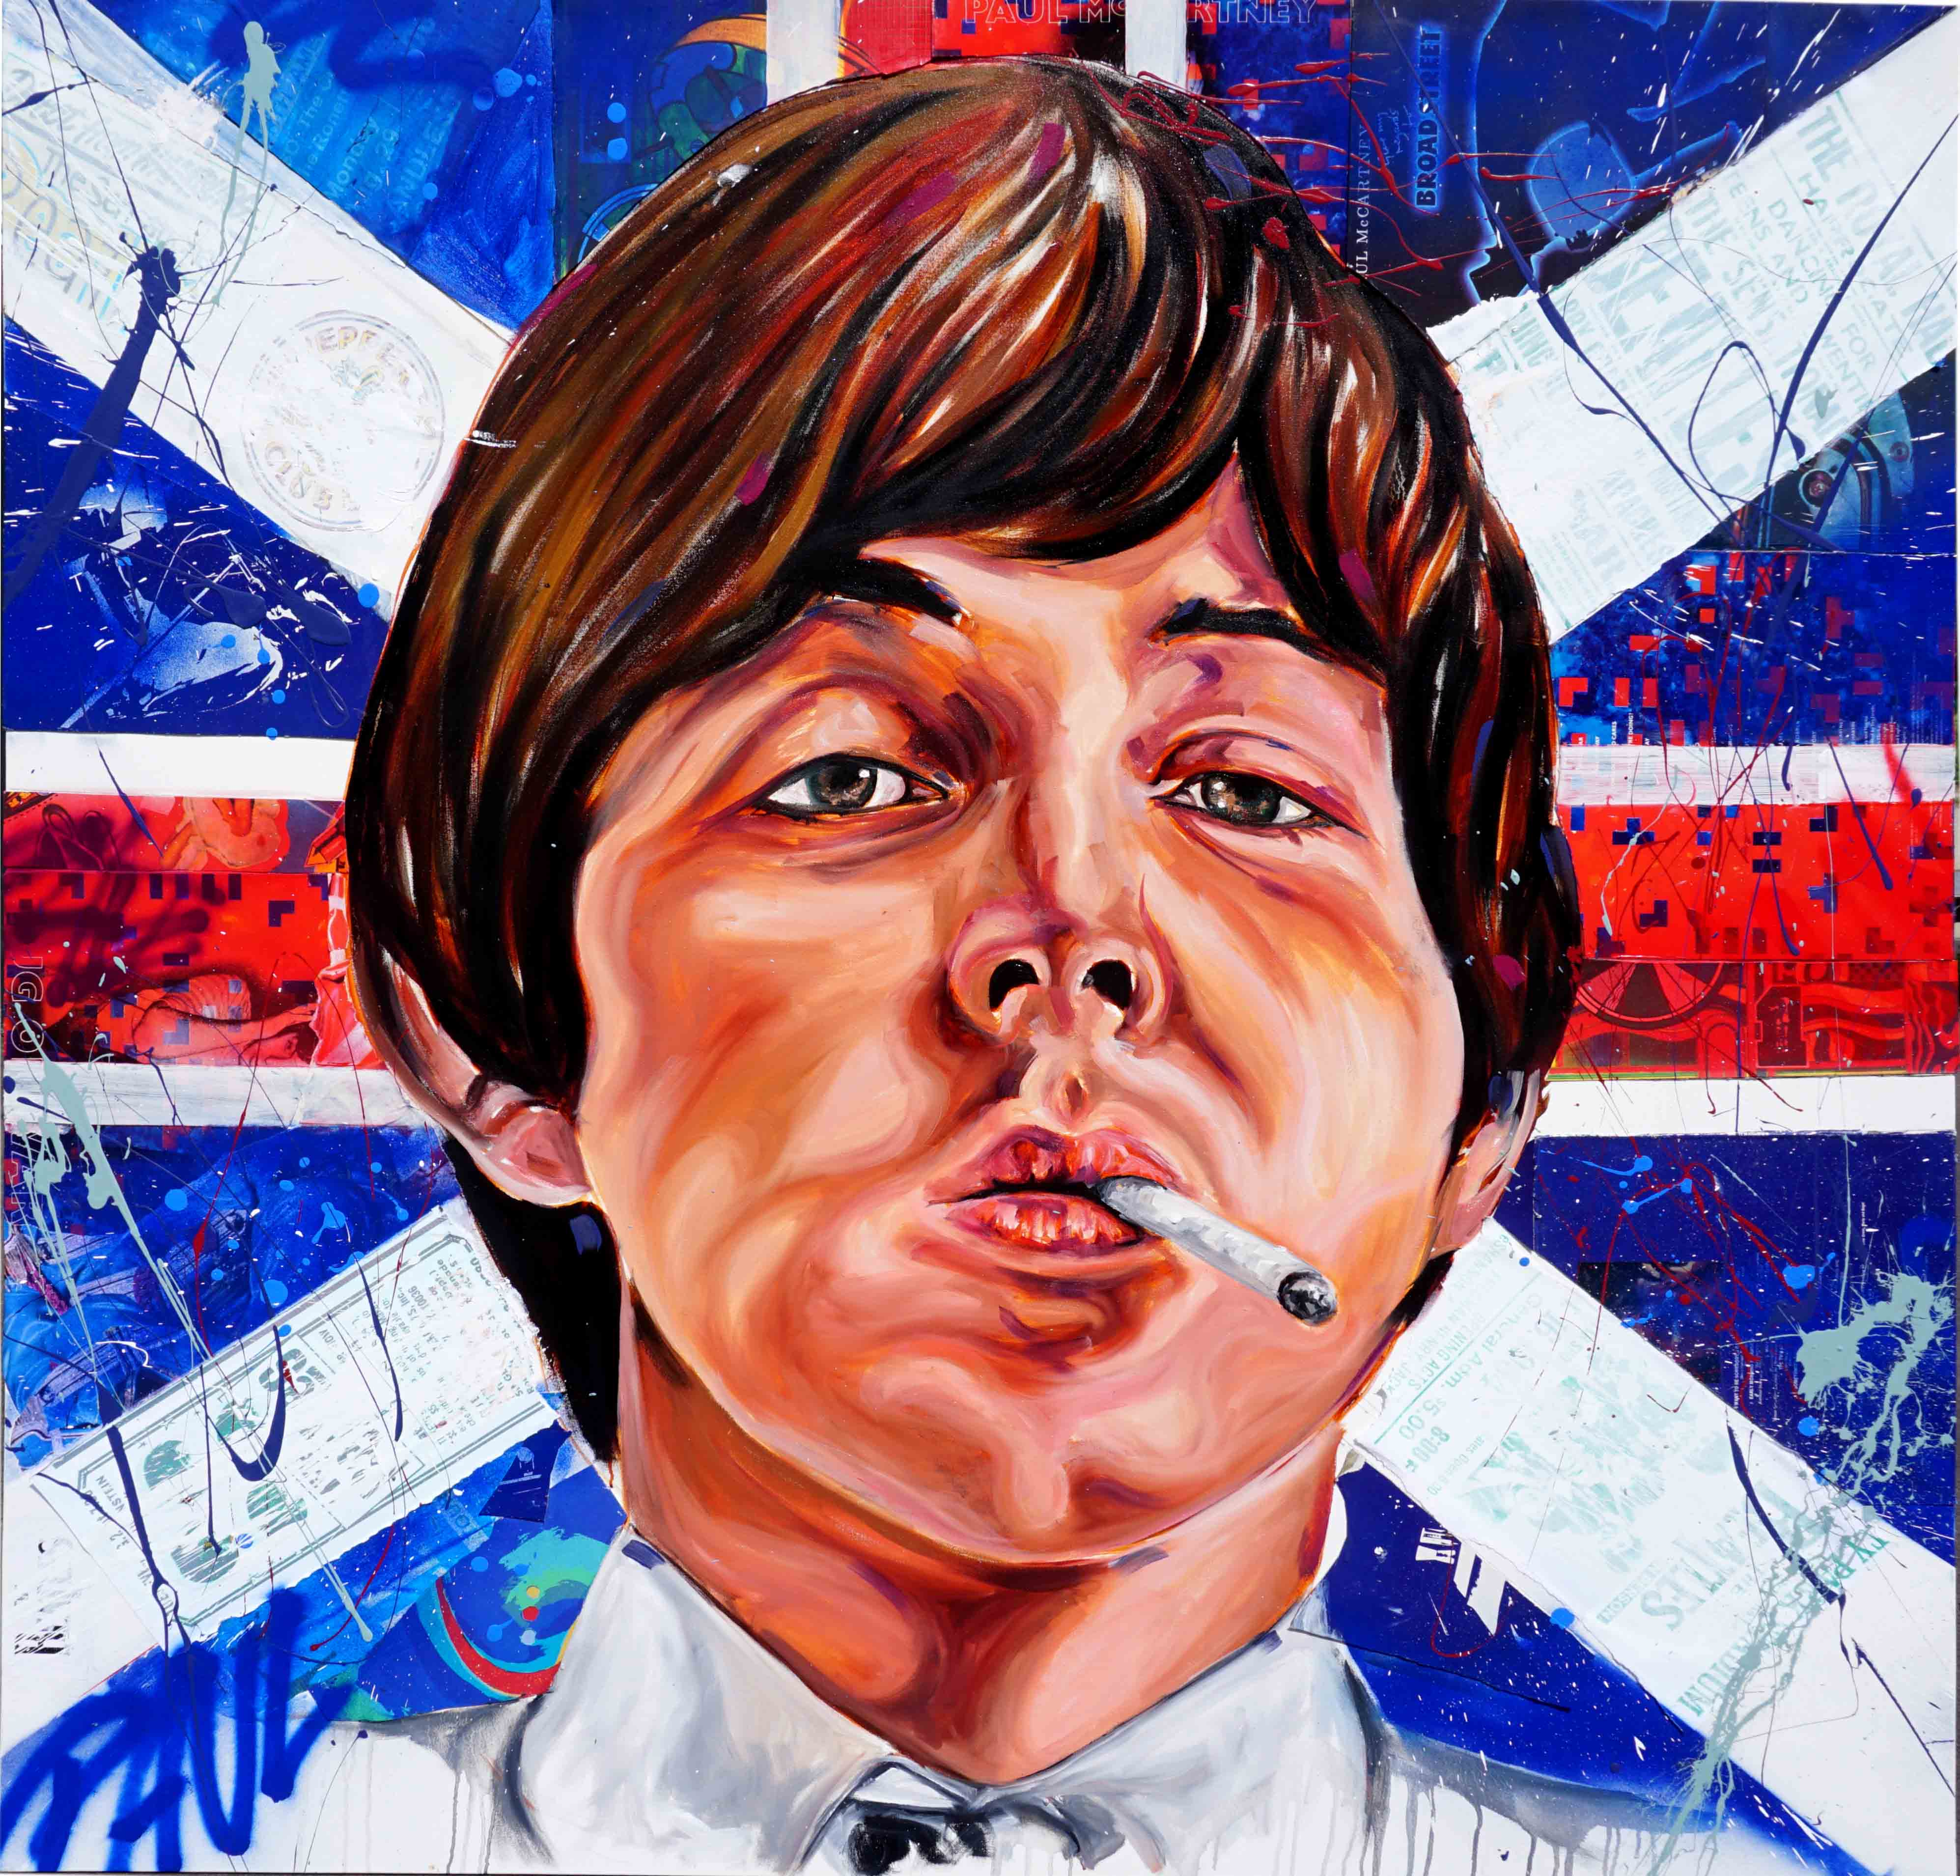 Paul McCartney 5ft x5ft